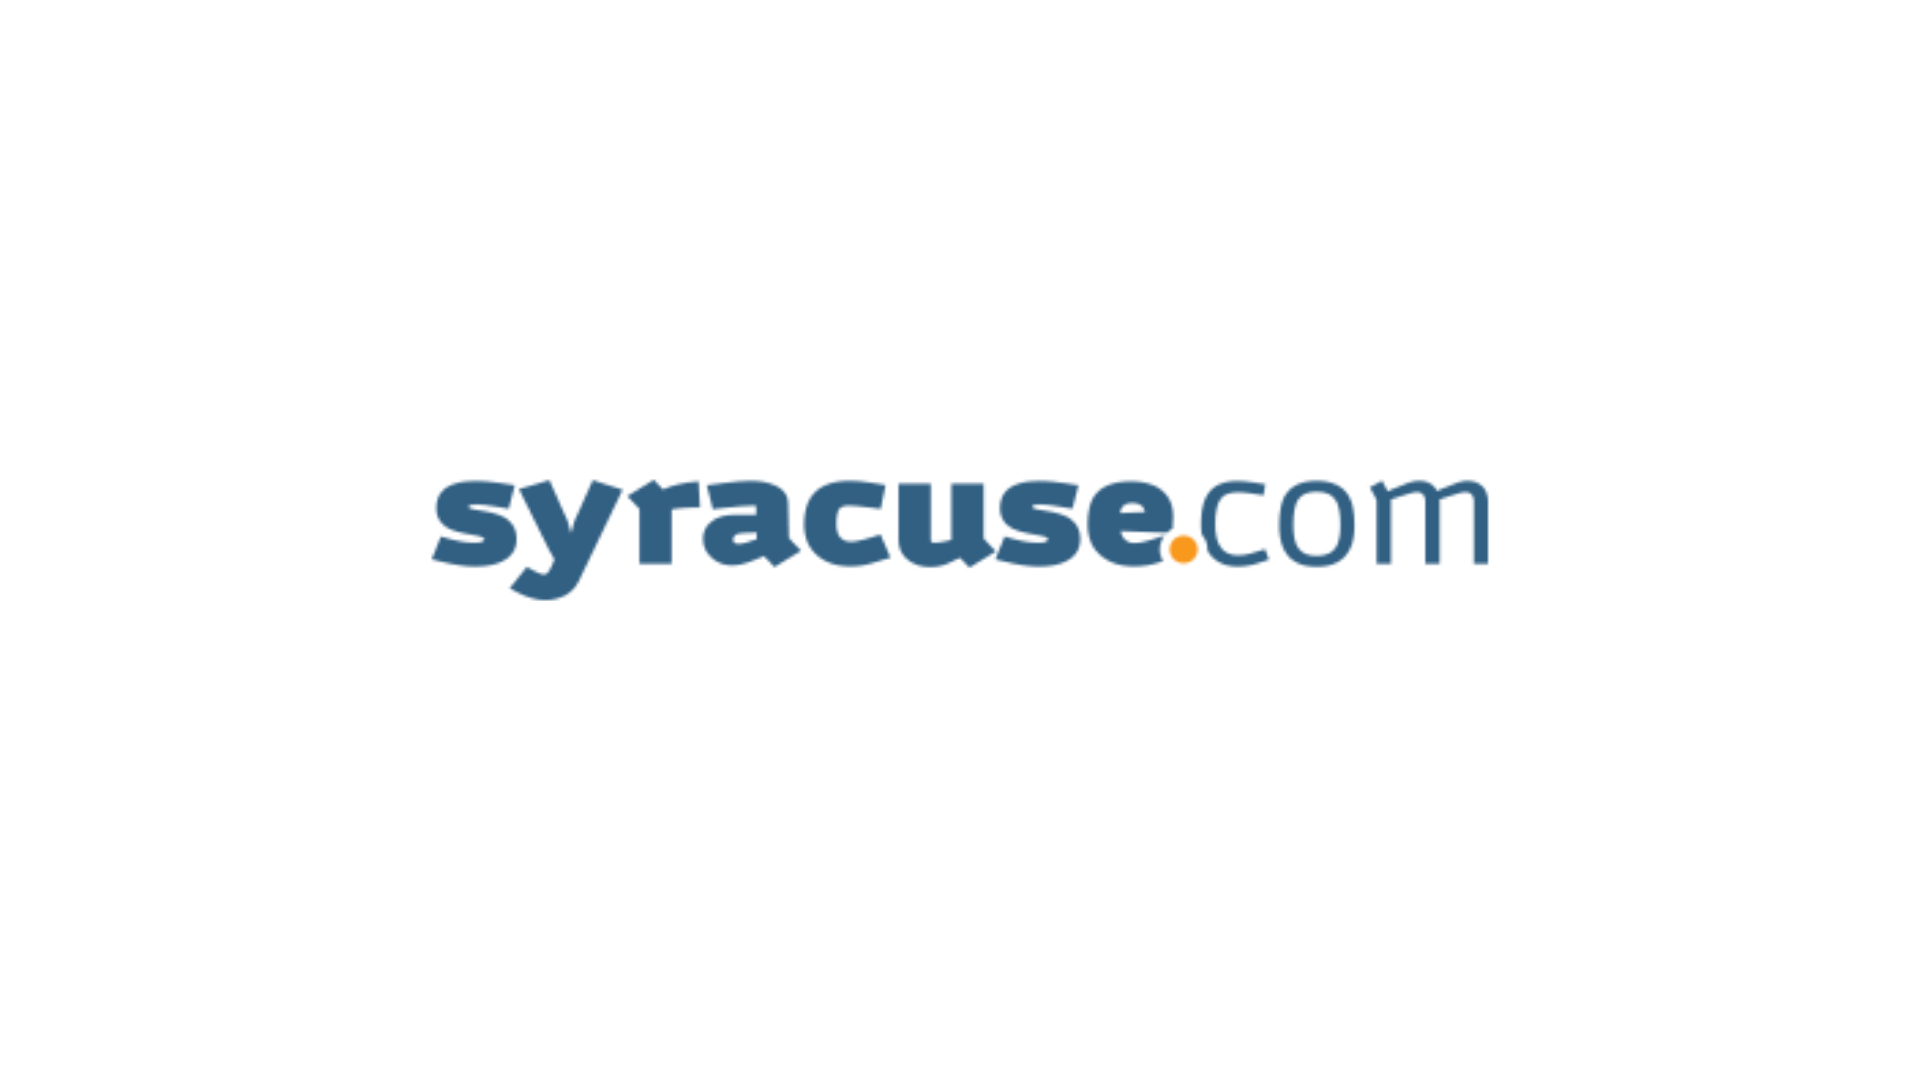 Syracuse.com Chloe Capital